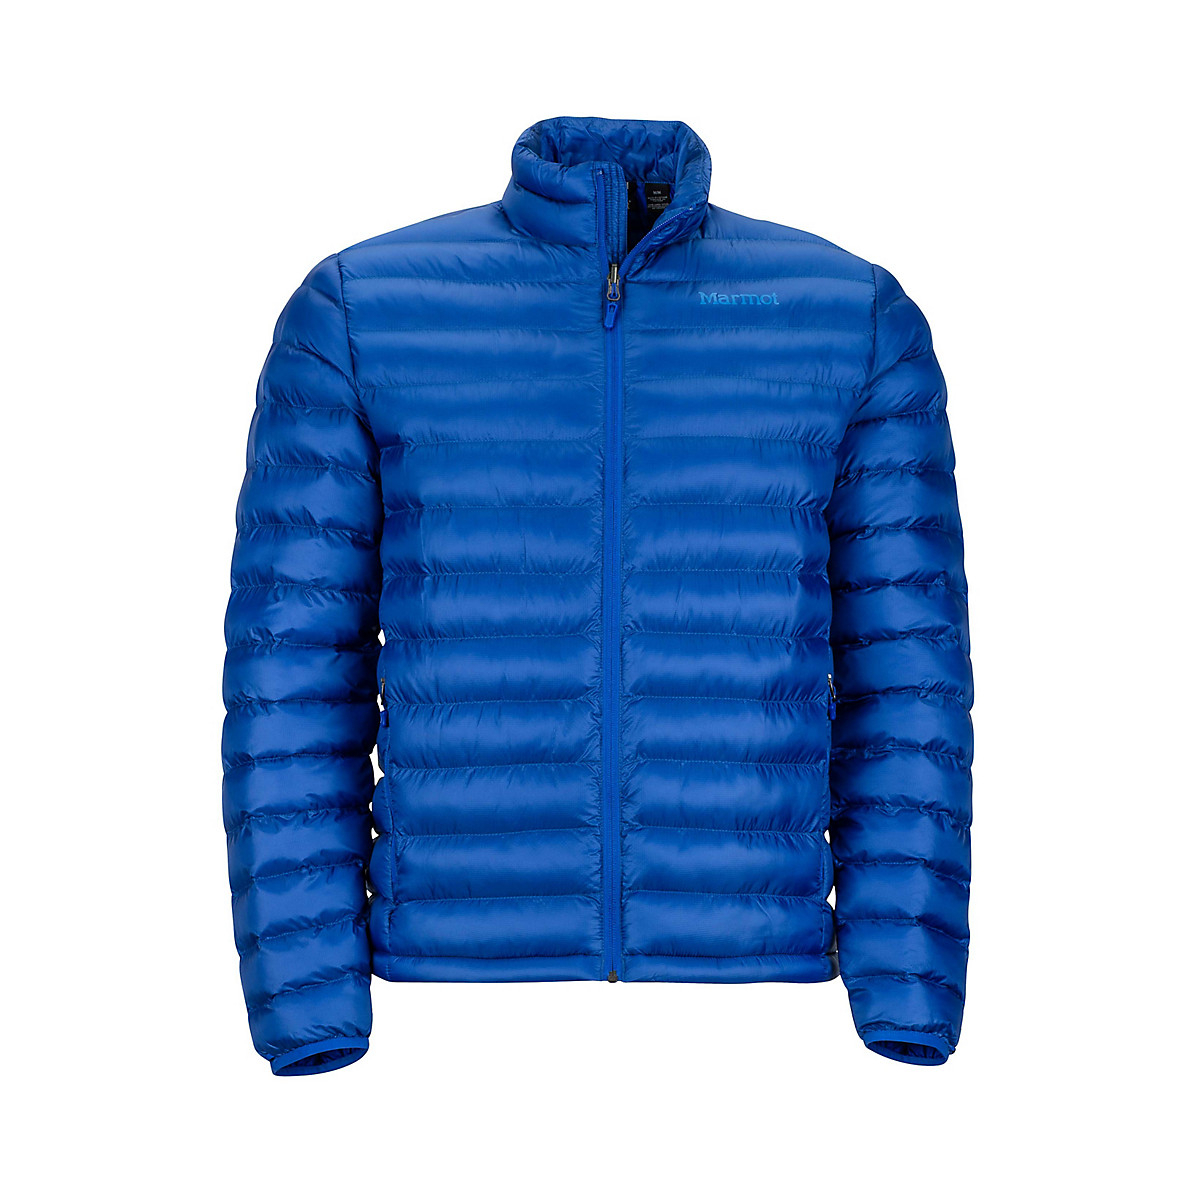 Marmot Men's Solus Featherless Jacket - Blue, L